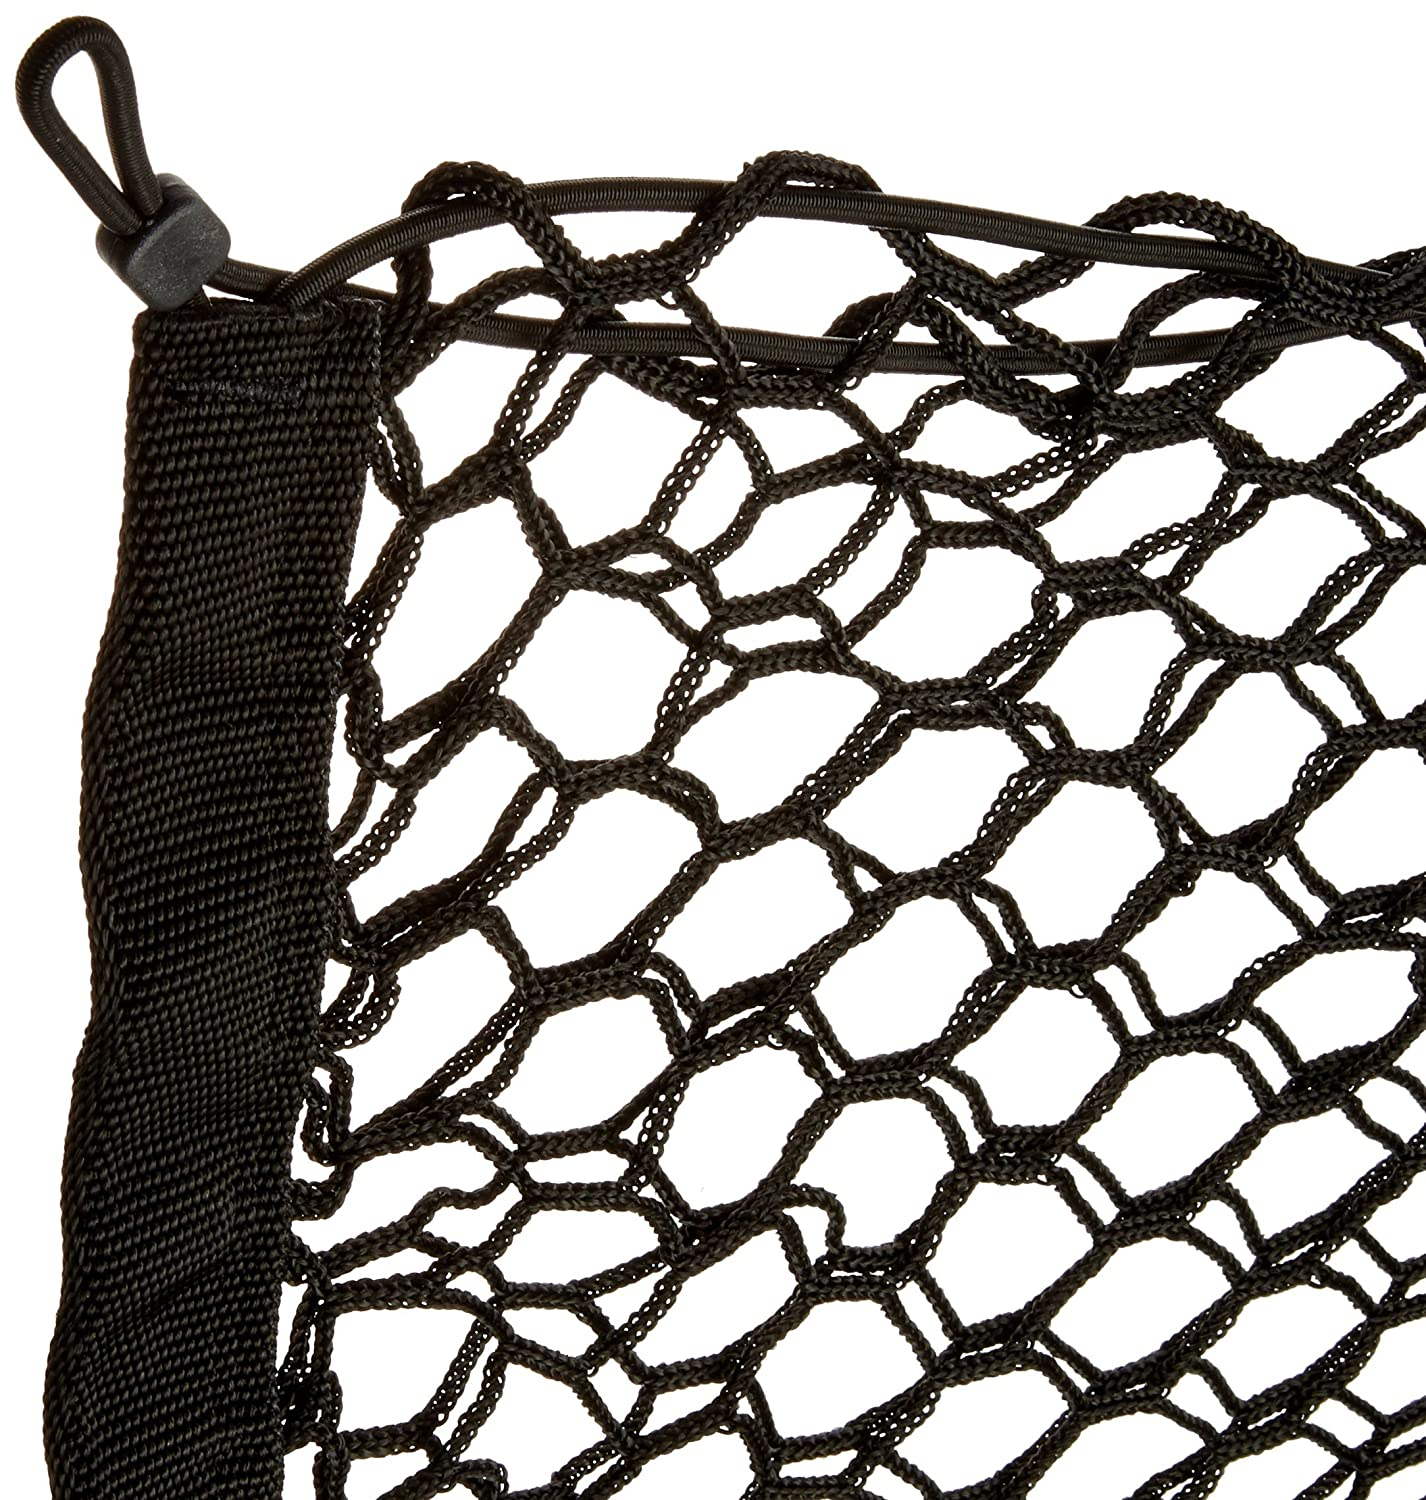 2Pack 15X15 Motorcycle Cargo Net Featuring 6 Adjustable Hooks /& Tight 2x2 Mesh